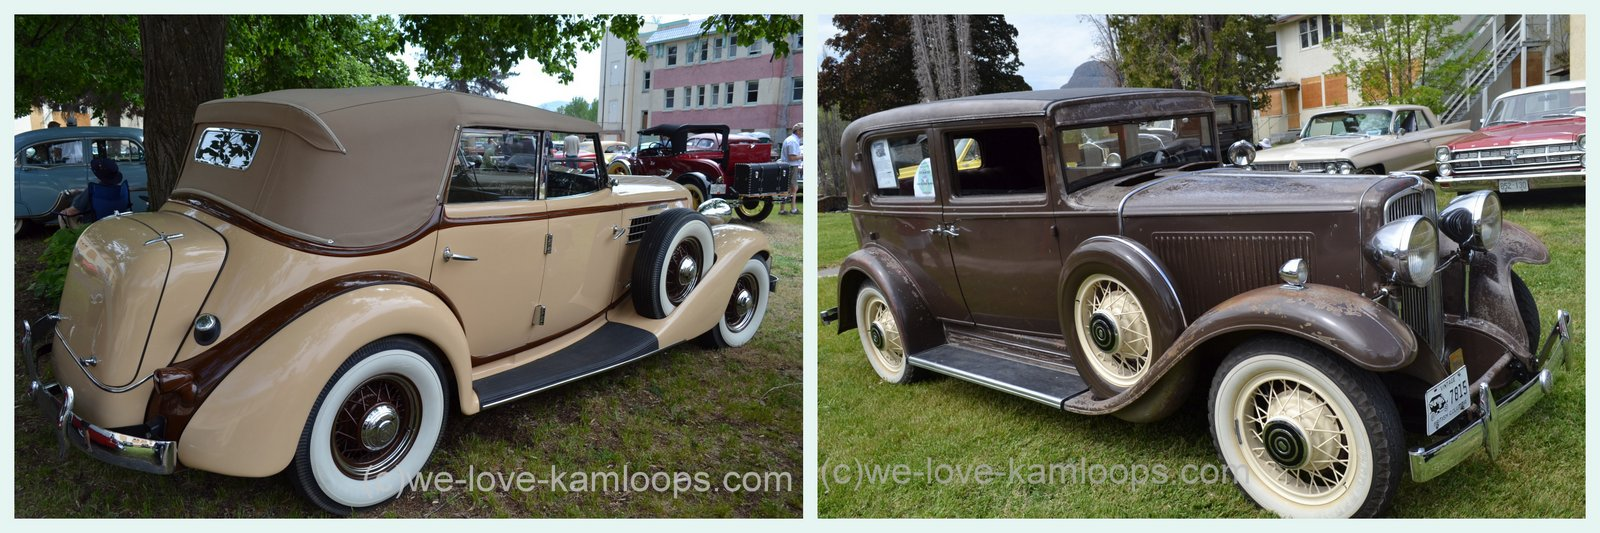 we-love-kamloops: Vintage Cars ~ Tranquille on the Lake ~ Kamloops, BC